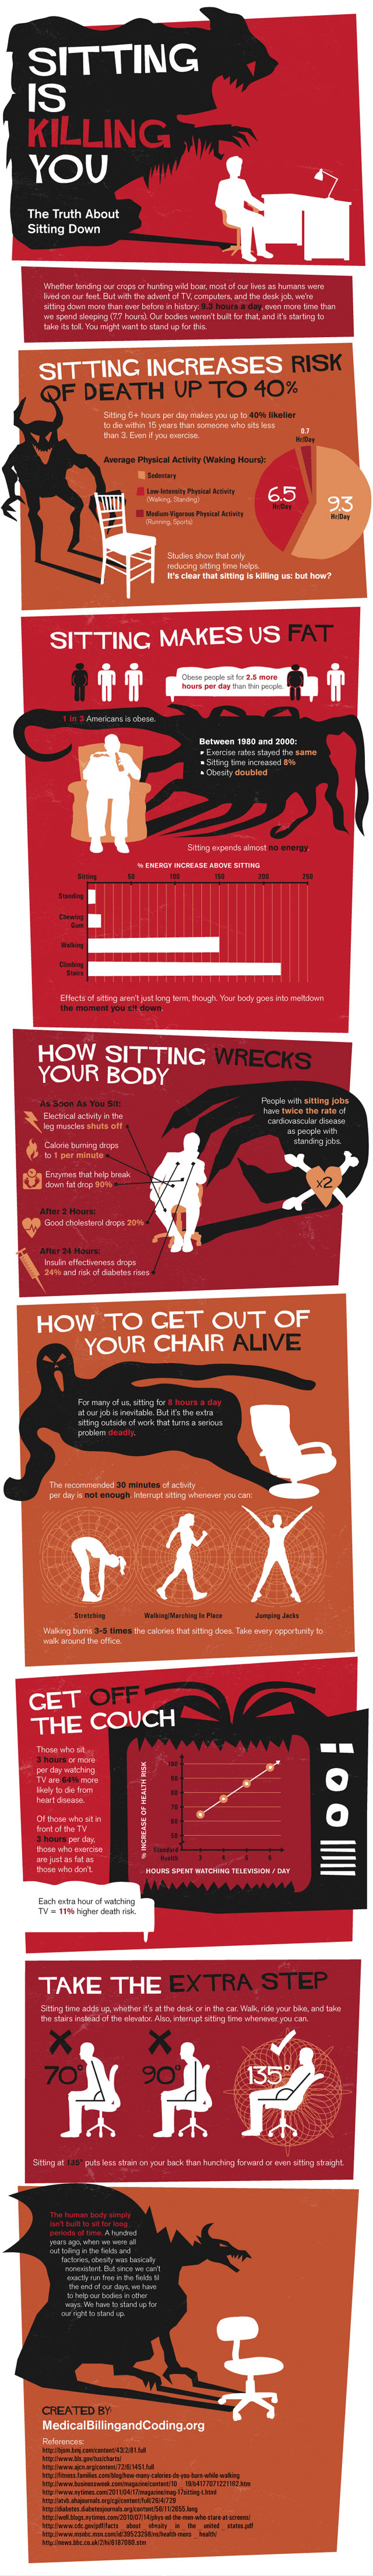 The Truth About Sitting Down Infographic